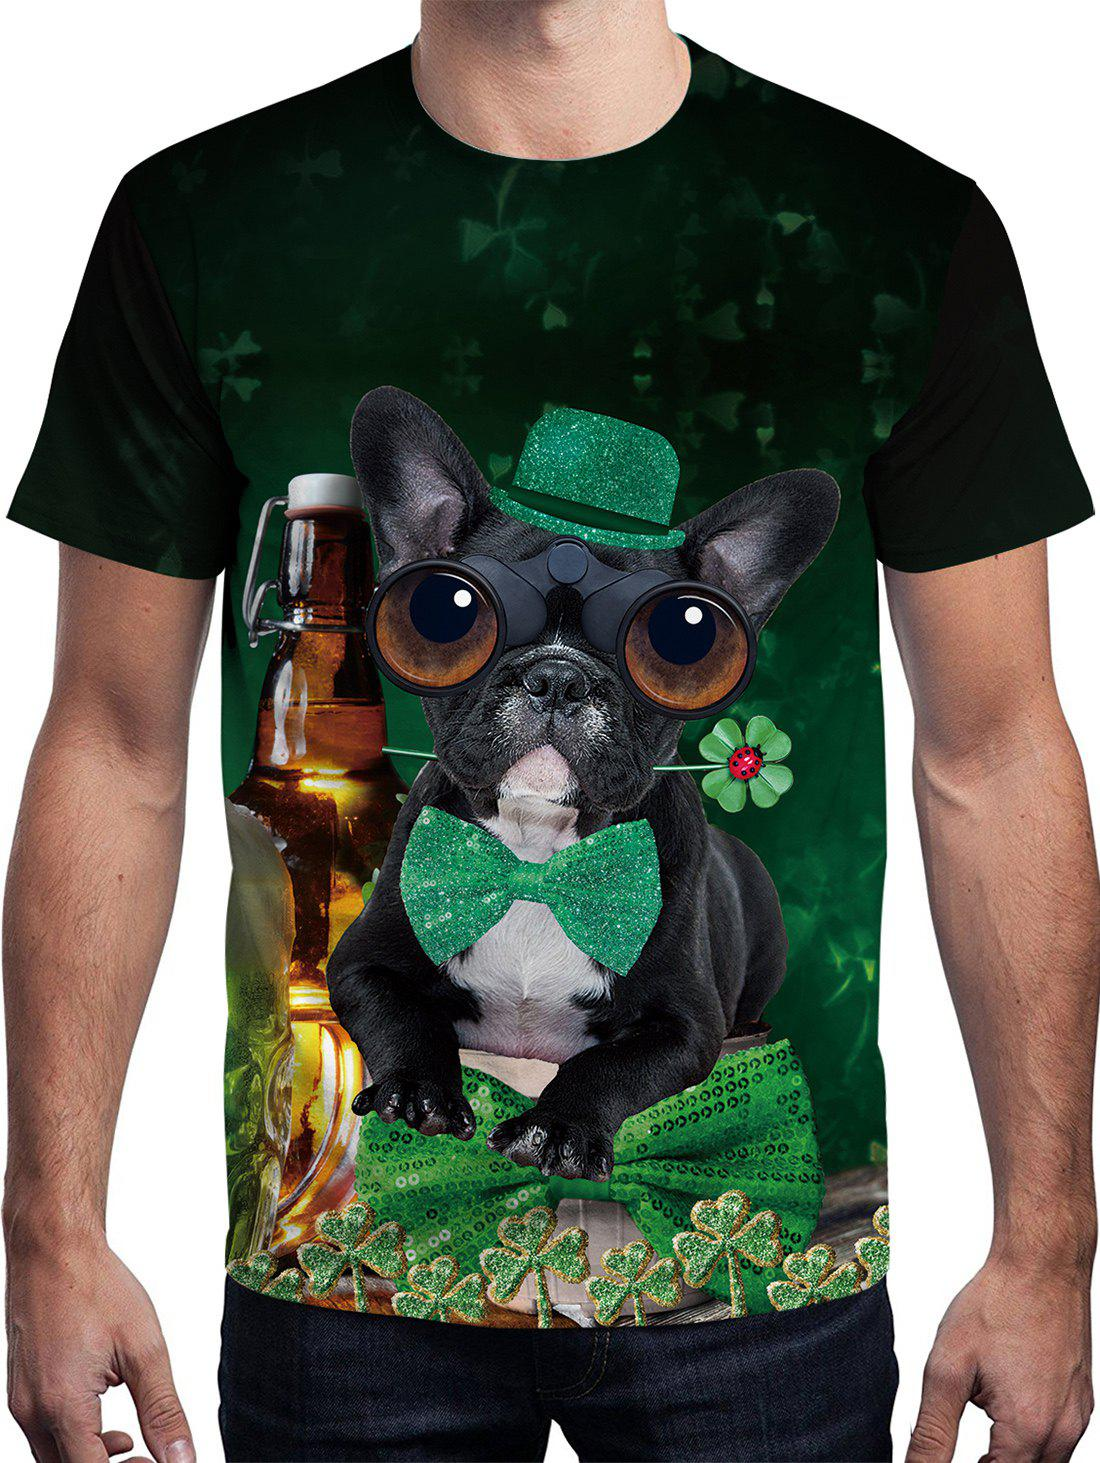 3D Dog Printed Short Sleeve T-shirt - multicolor J S